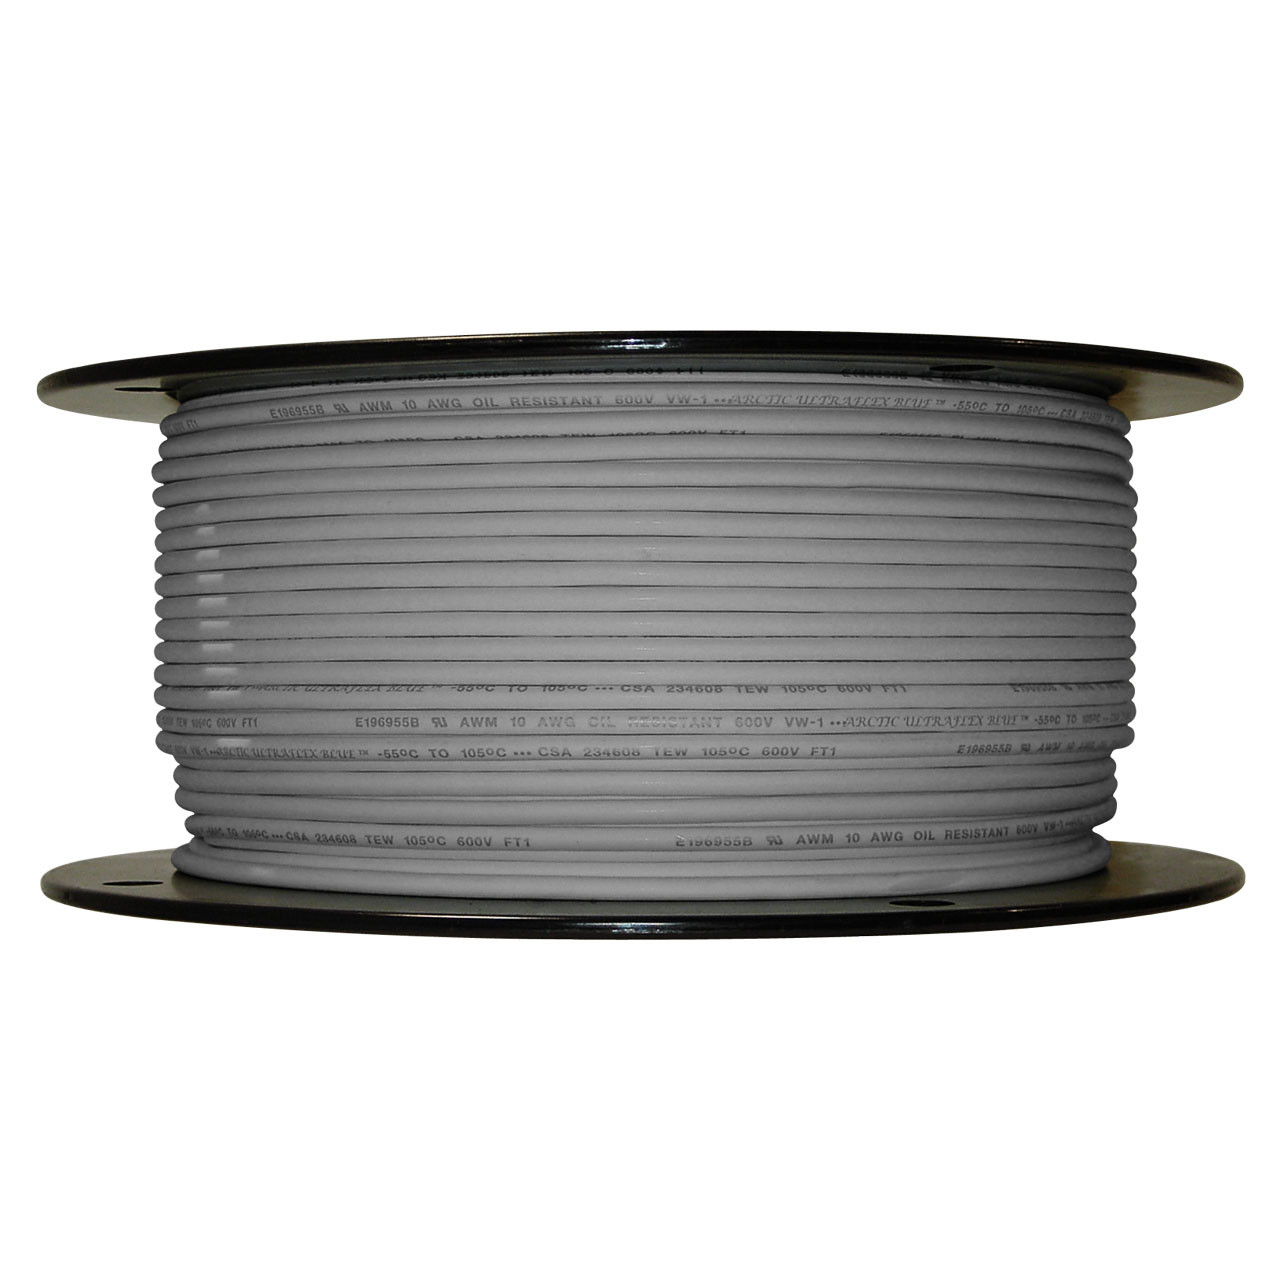 Arctic Ultraflex Blue Single Conductor Wire 100% copper tinned fine strand, 600v applications, 10 AWG Gray, 500 foot spool